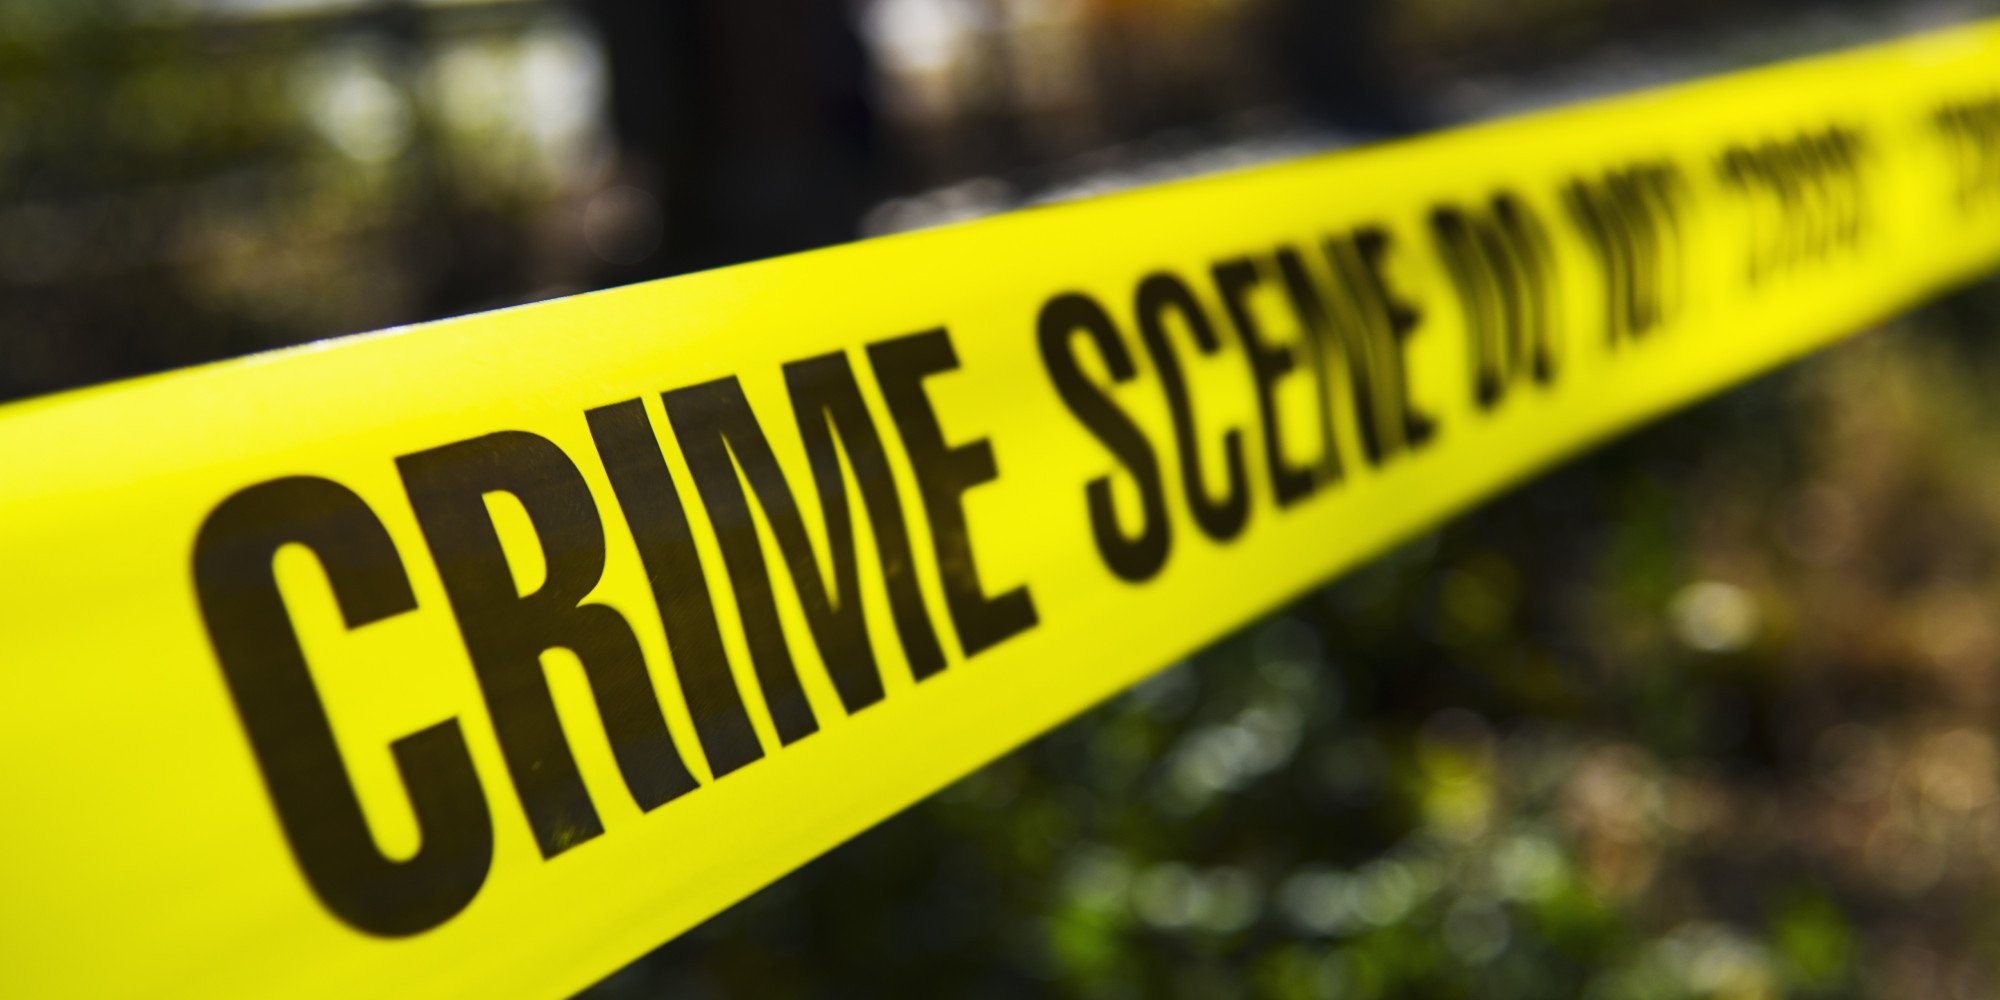 CRIME-SCENE-clean-up-business